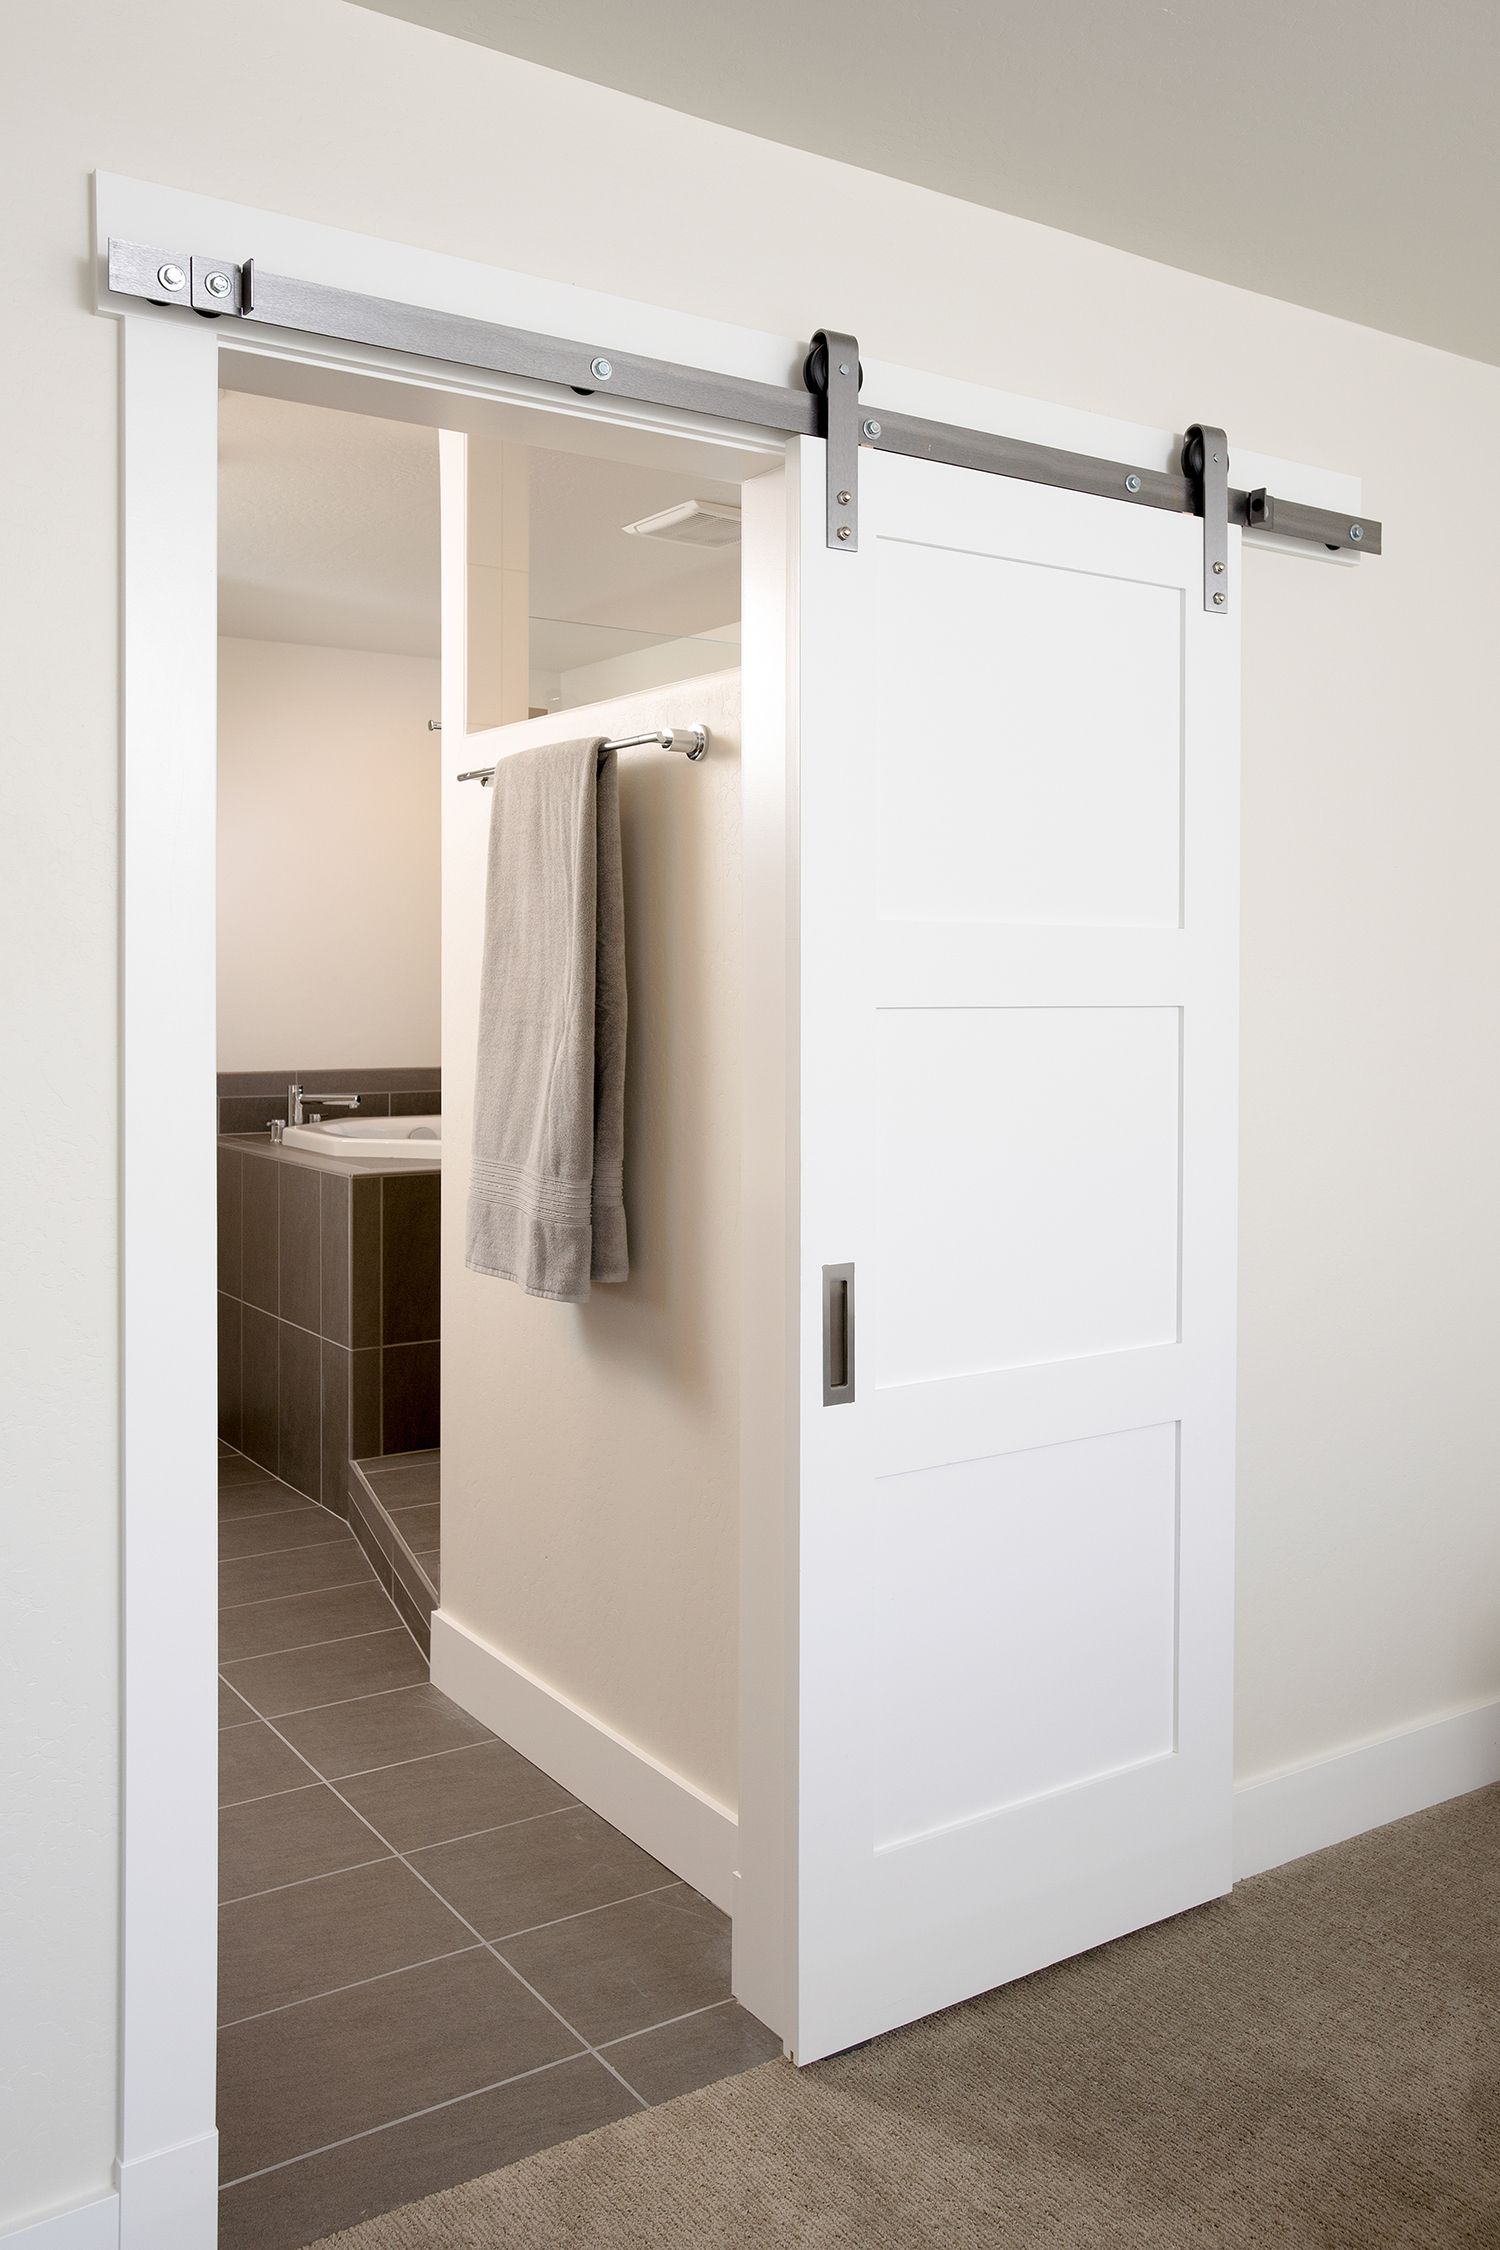 This Contemporary Sliding Interior Barn Door Blends Seamlessly With